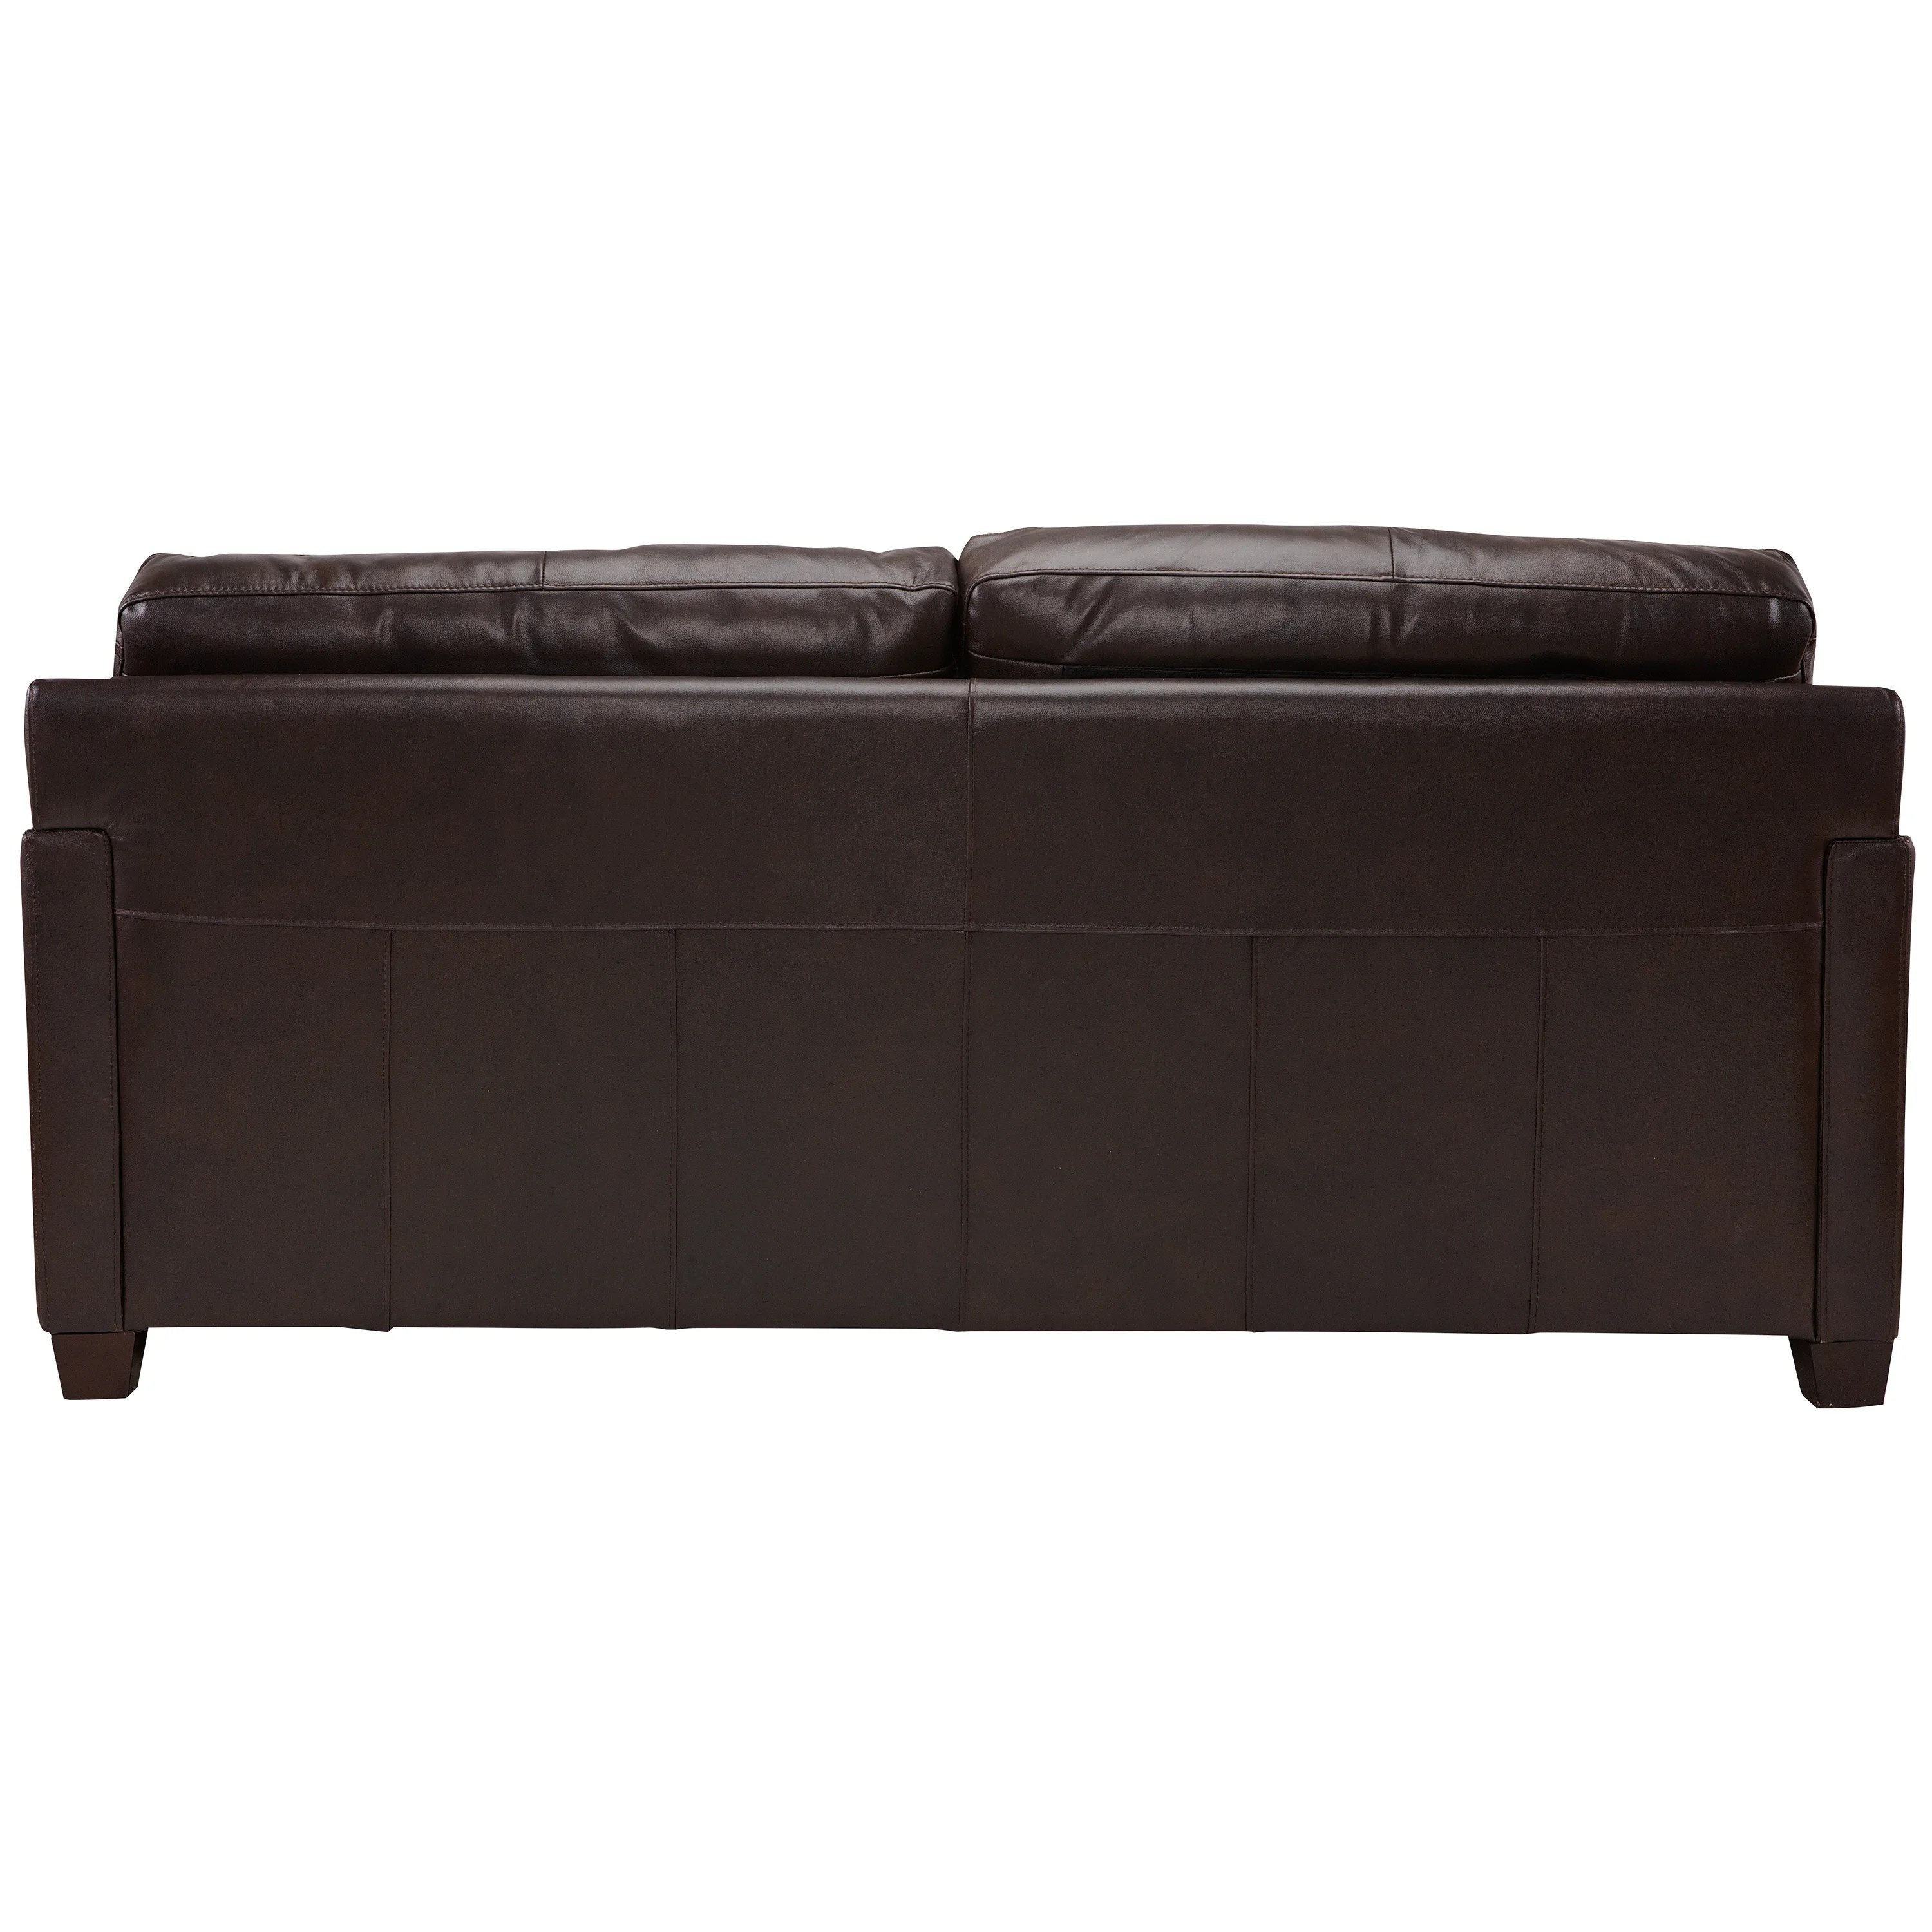 High Quality Leather Furniture Toronto High Quality Leather